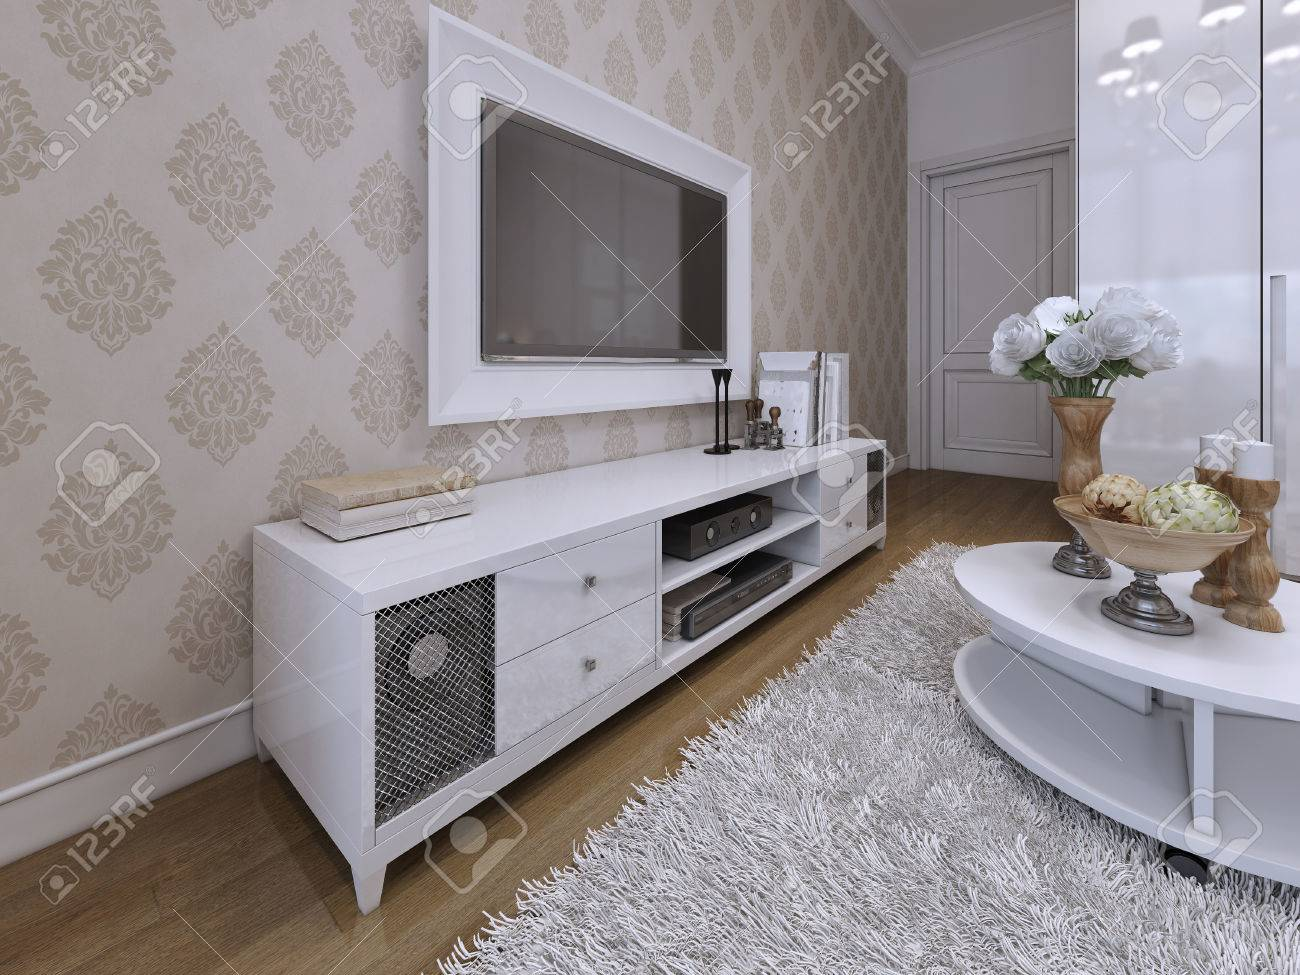 Tv Unit With A Tv On The Wall In A White Frame Modern And Art Stock Photo Picture And Royalty Free Image Image 47410307